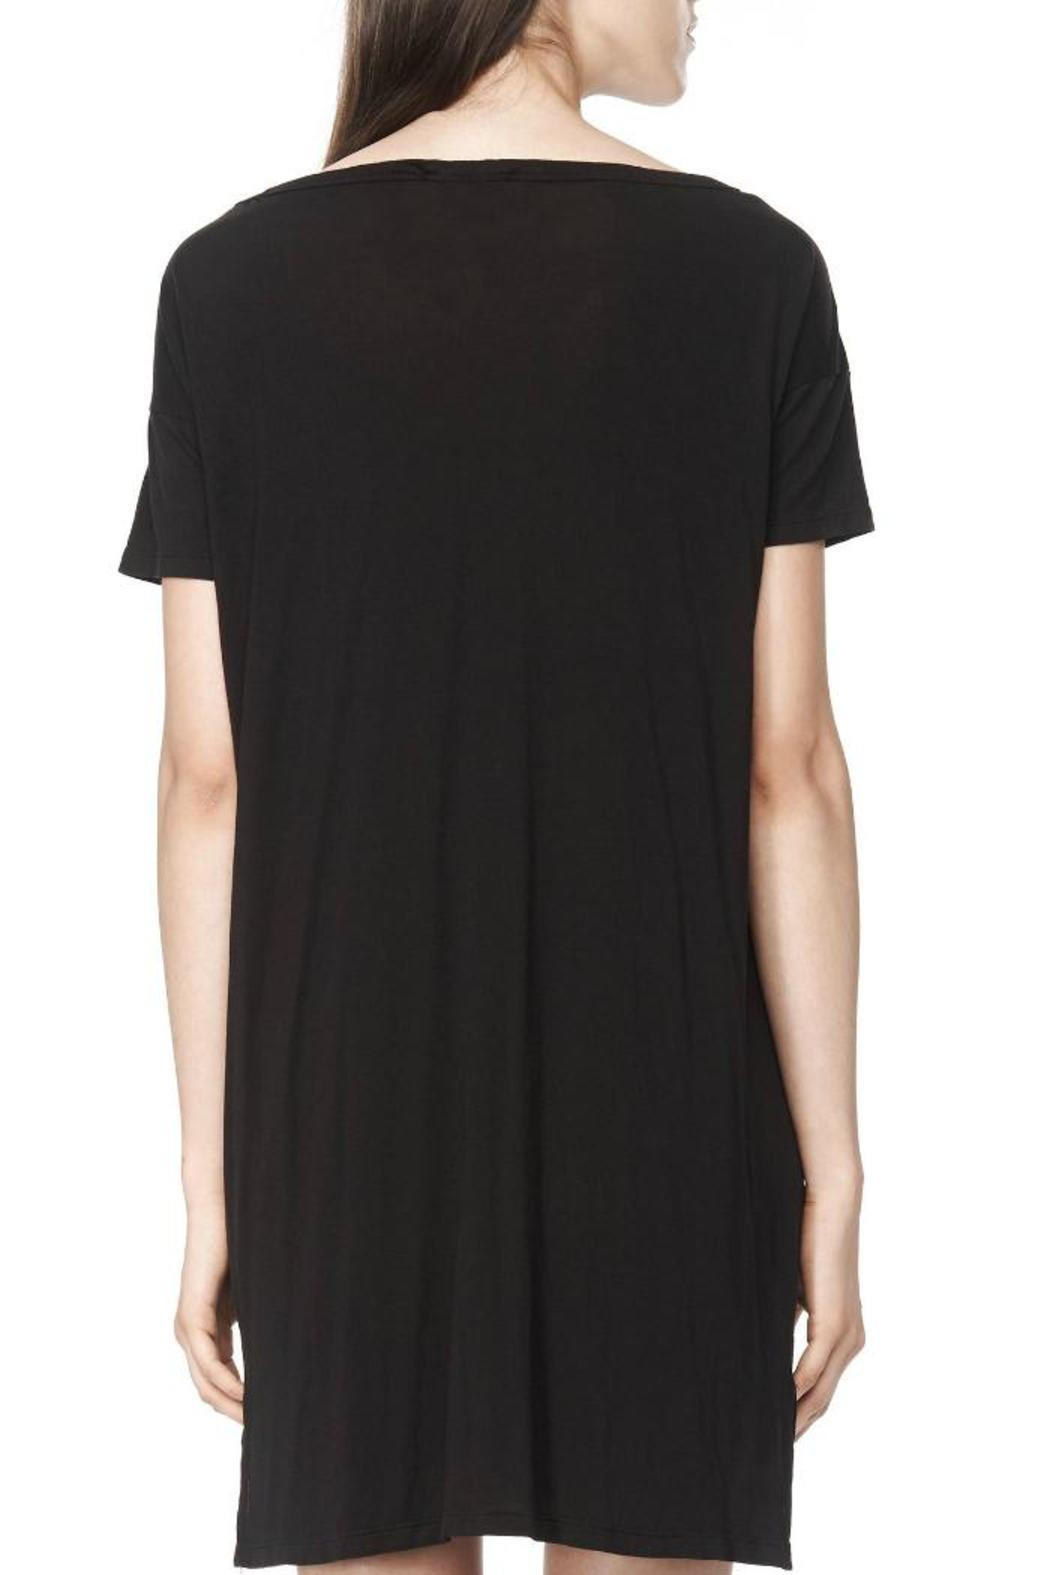 T by Alexander Wang Classic Boatneck Dress - Back Cropped Image